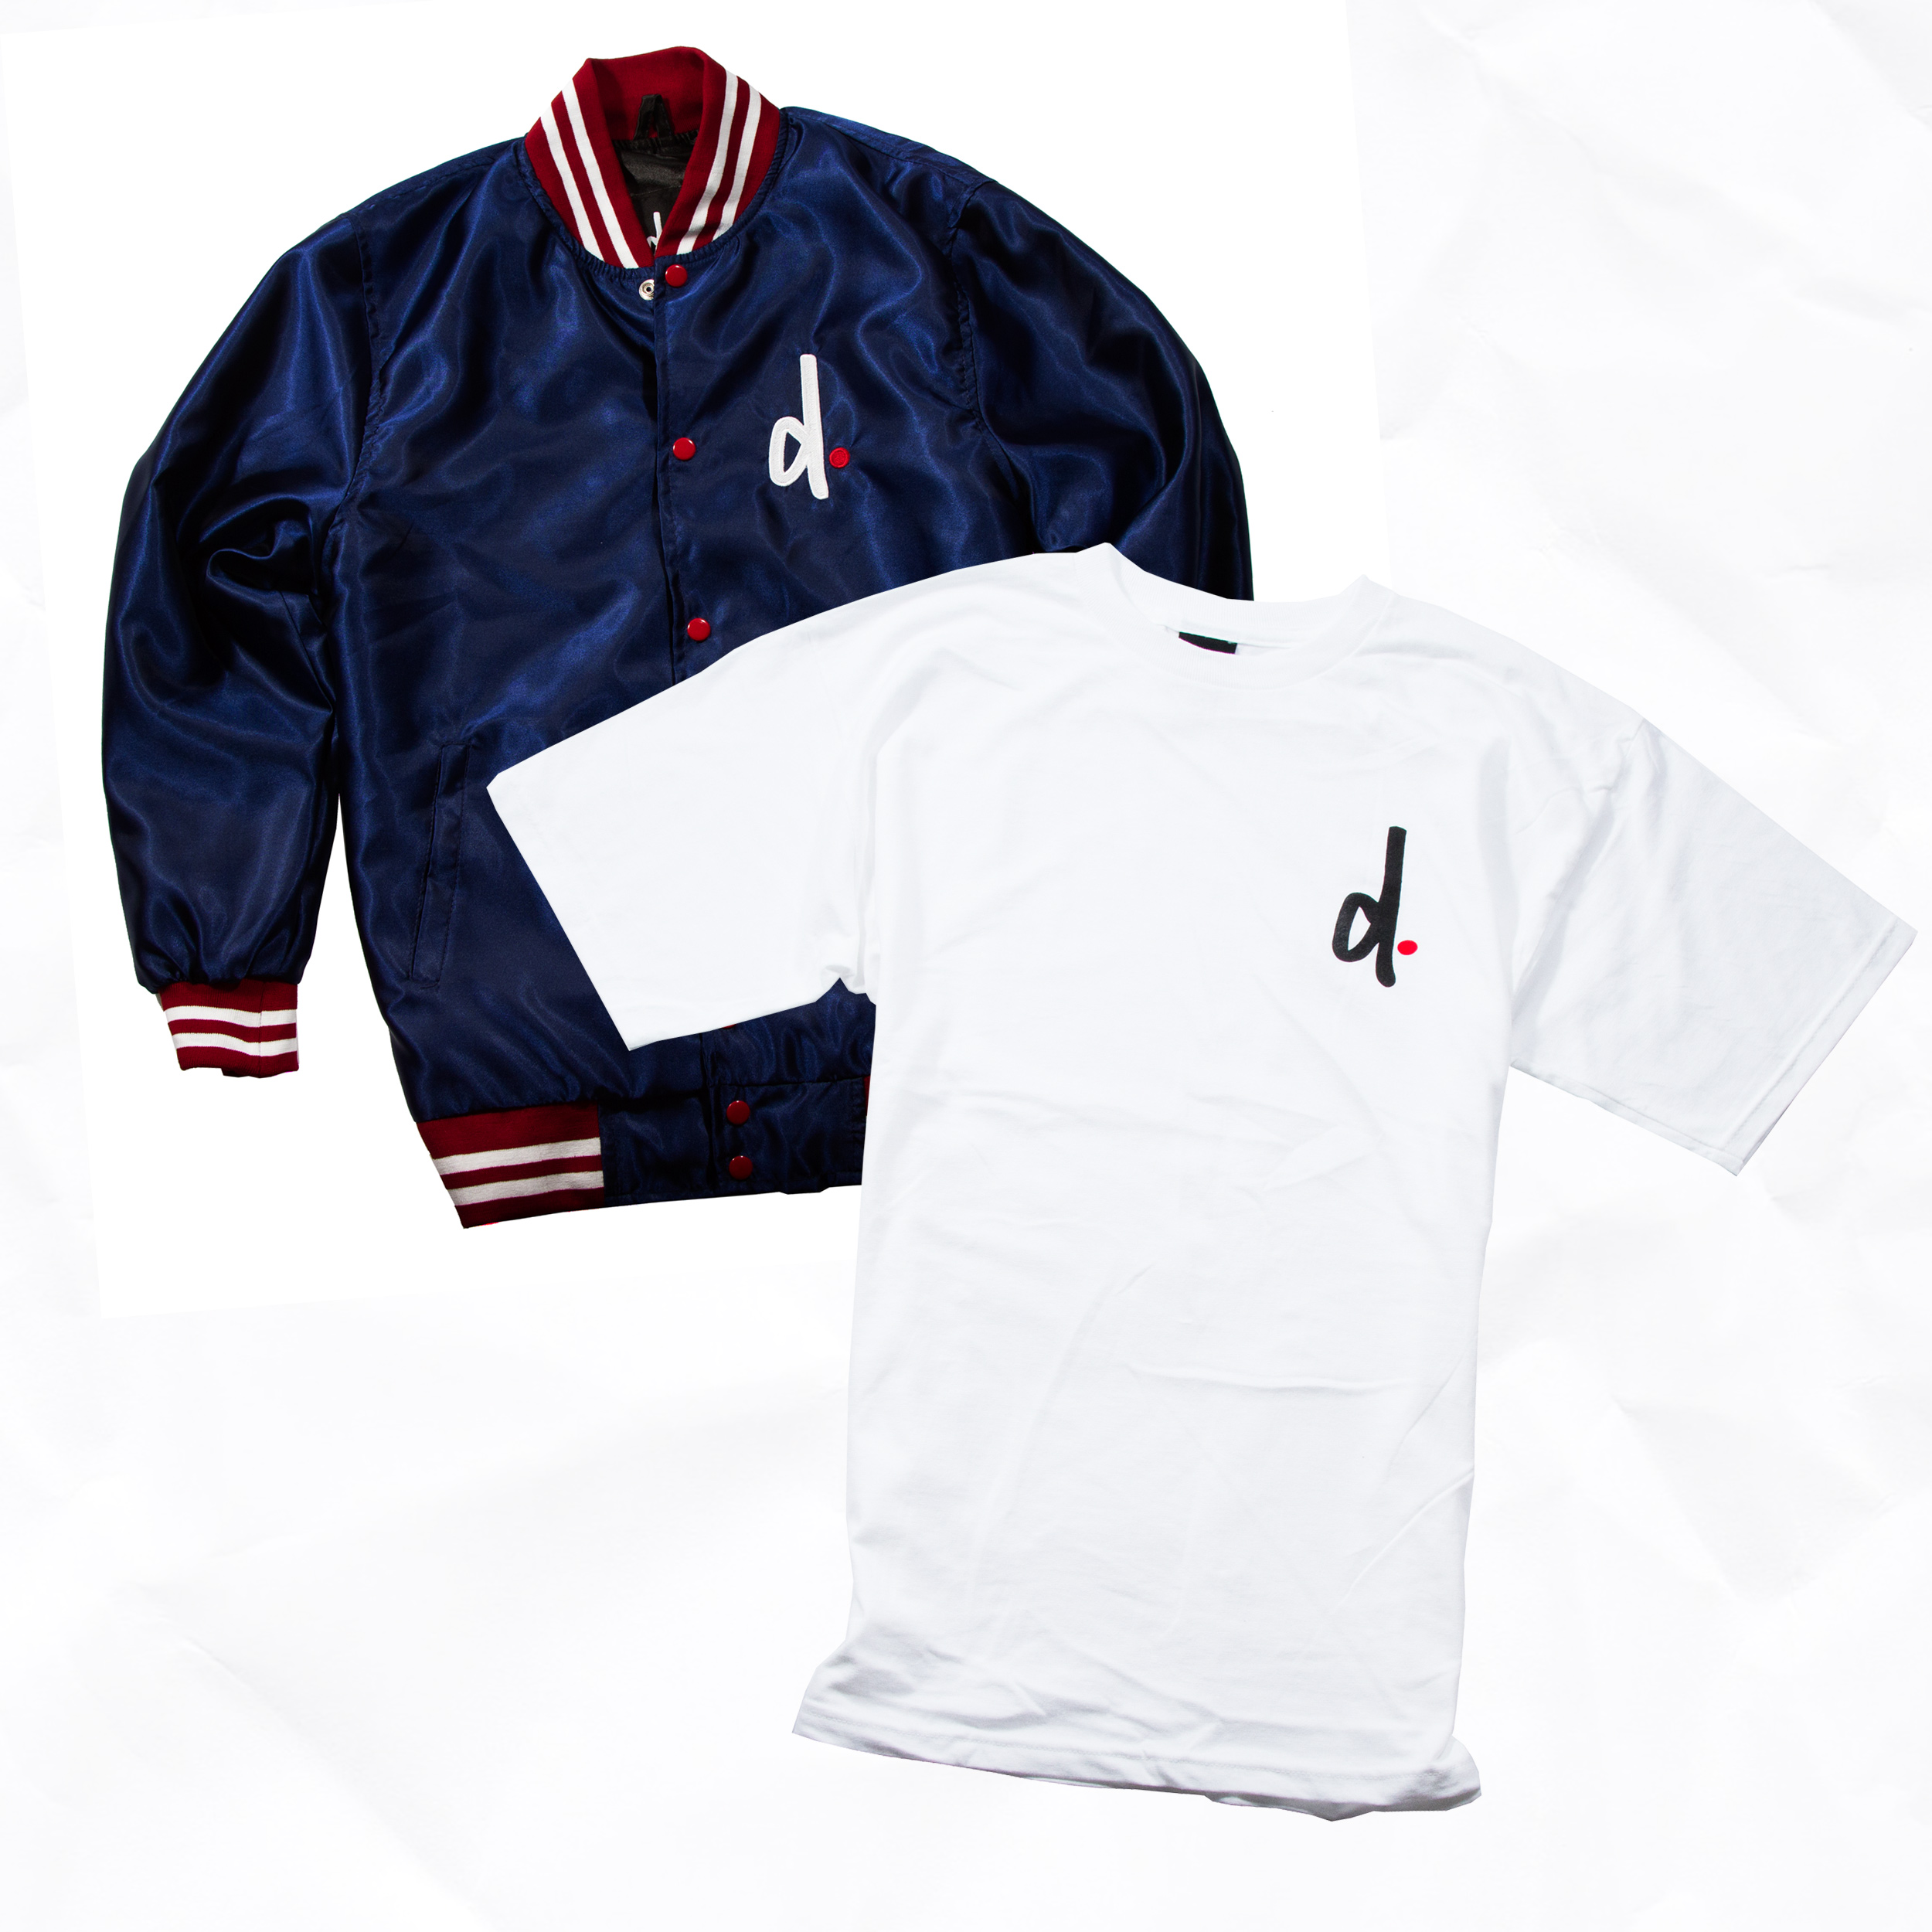 Dishonour Brand - New Dishonour B's Drop Throwback Varsity Jackets and Tees Out NOW! Limited Edition